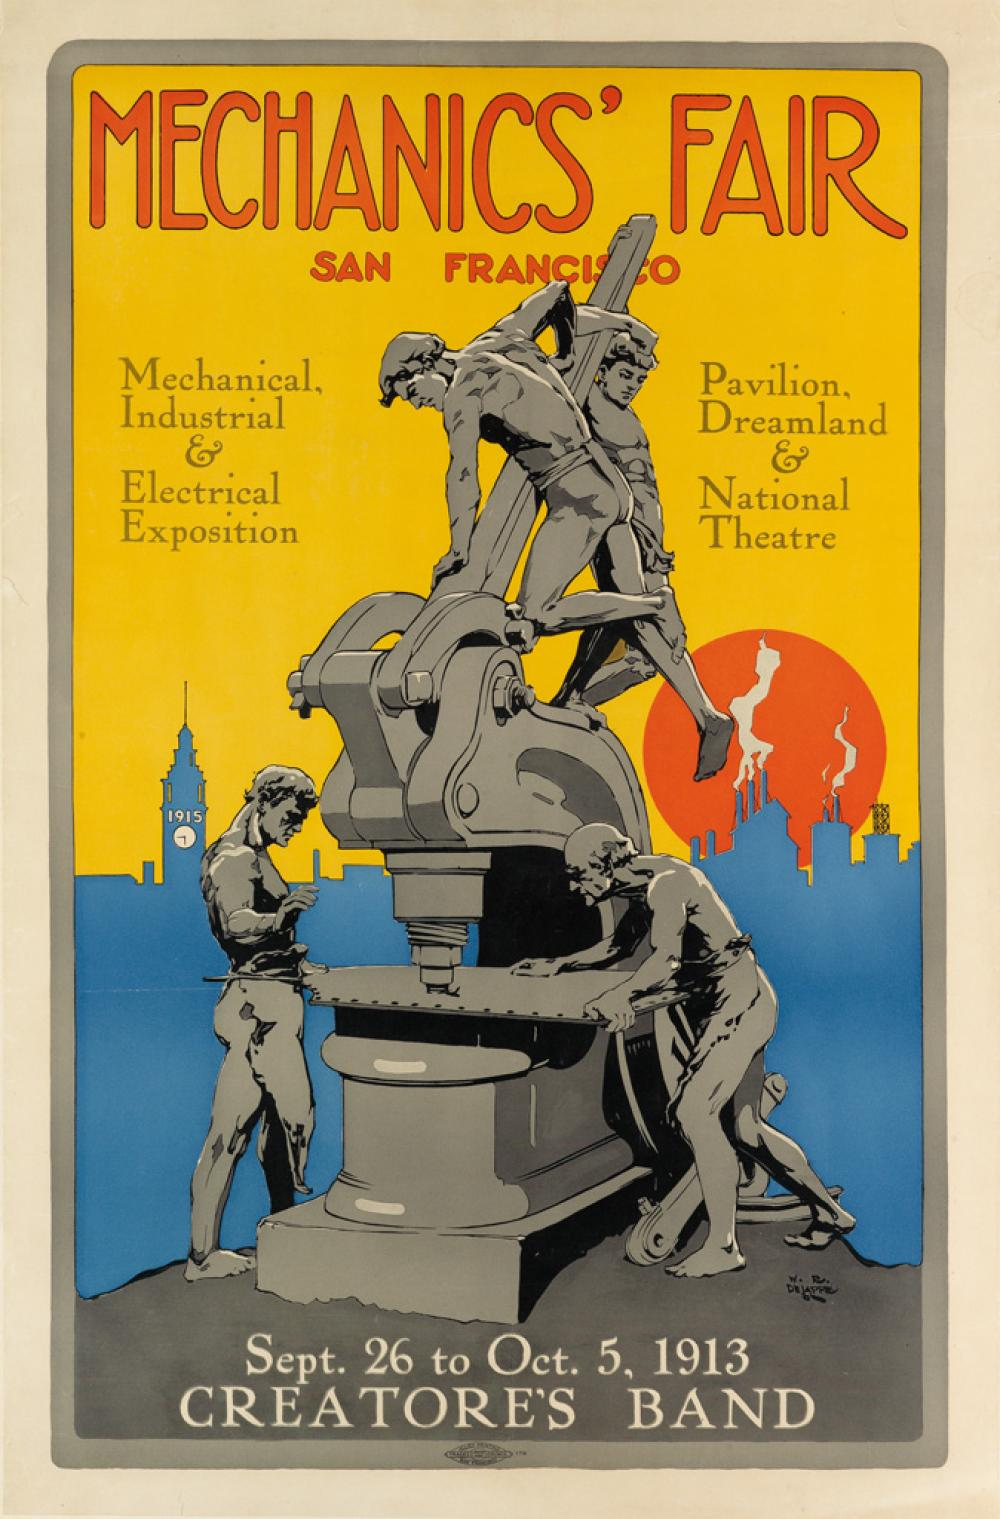 WESLEY RAYMOND DE LAPPE (1887-1952). MECHANICS' FAIR / SAN FRANCISCO. 1913. 30x20 inches, 76x50 cm. Allied Printing, San Francisco.